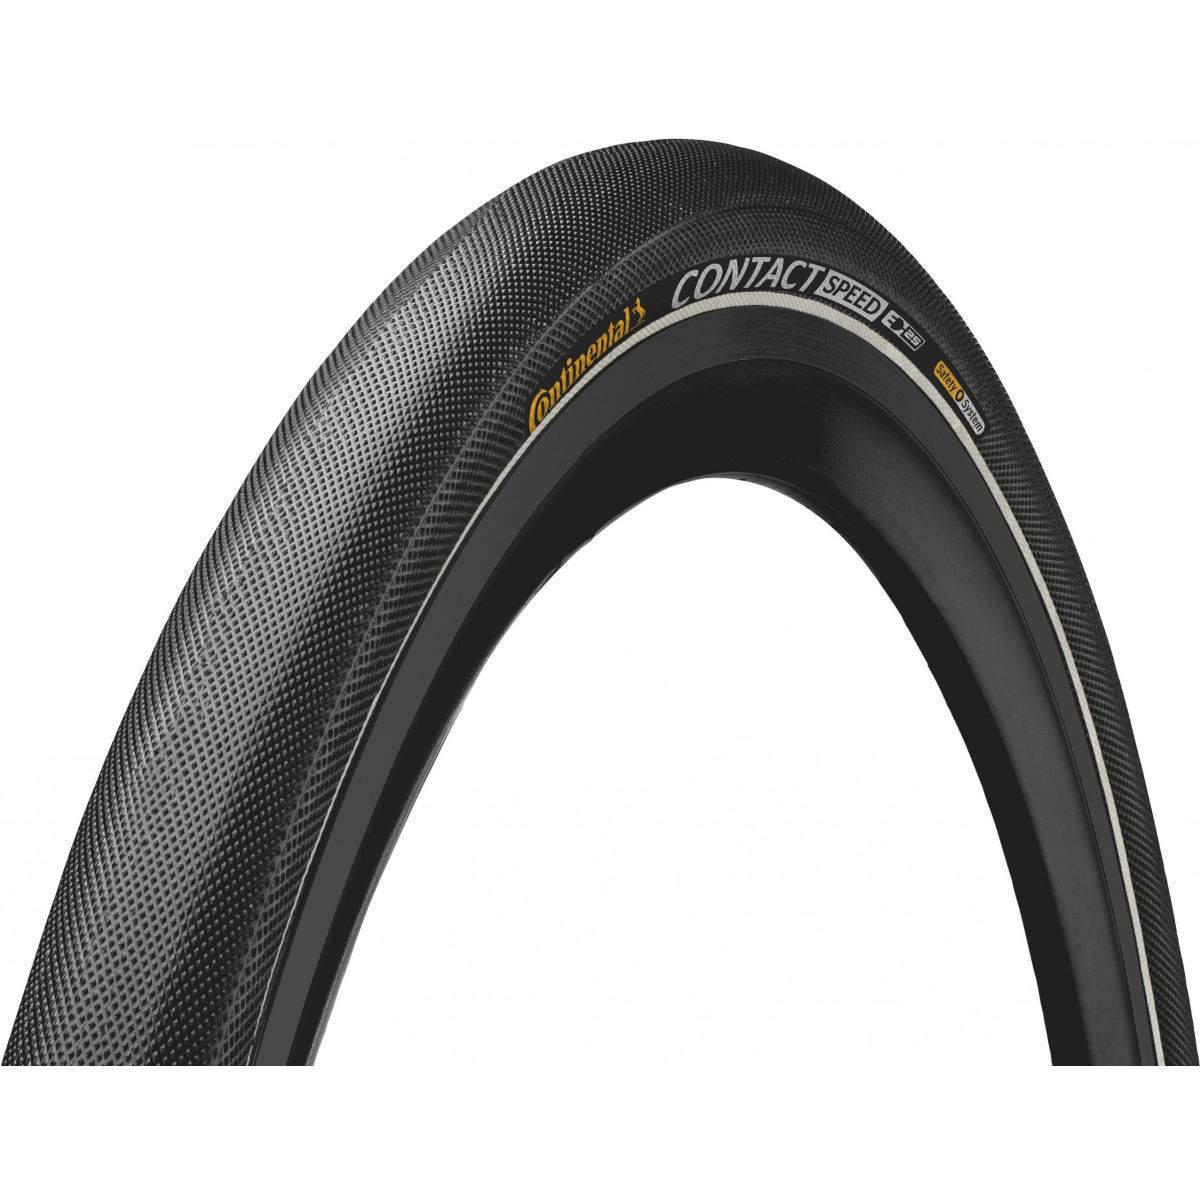 Continental Continental CONTACT Speed City Tyre   Tyres